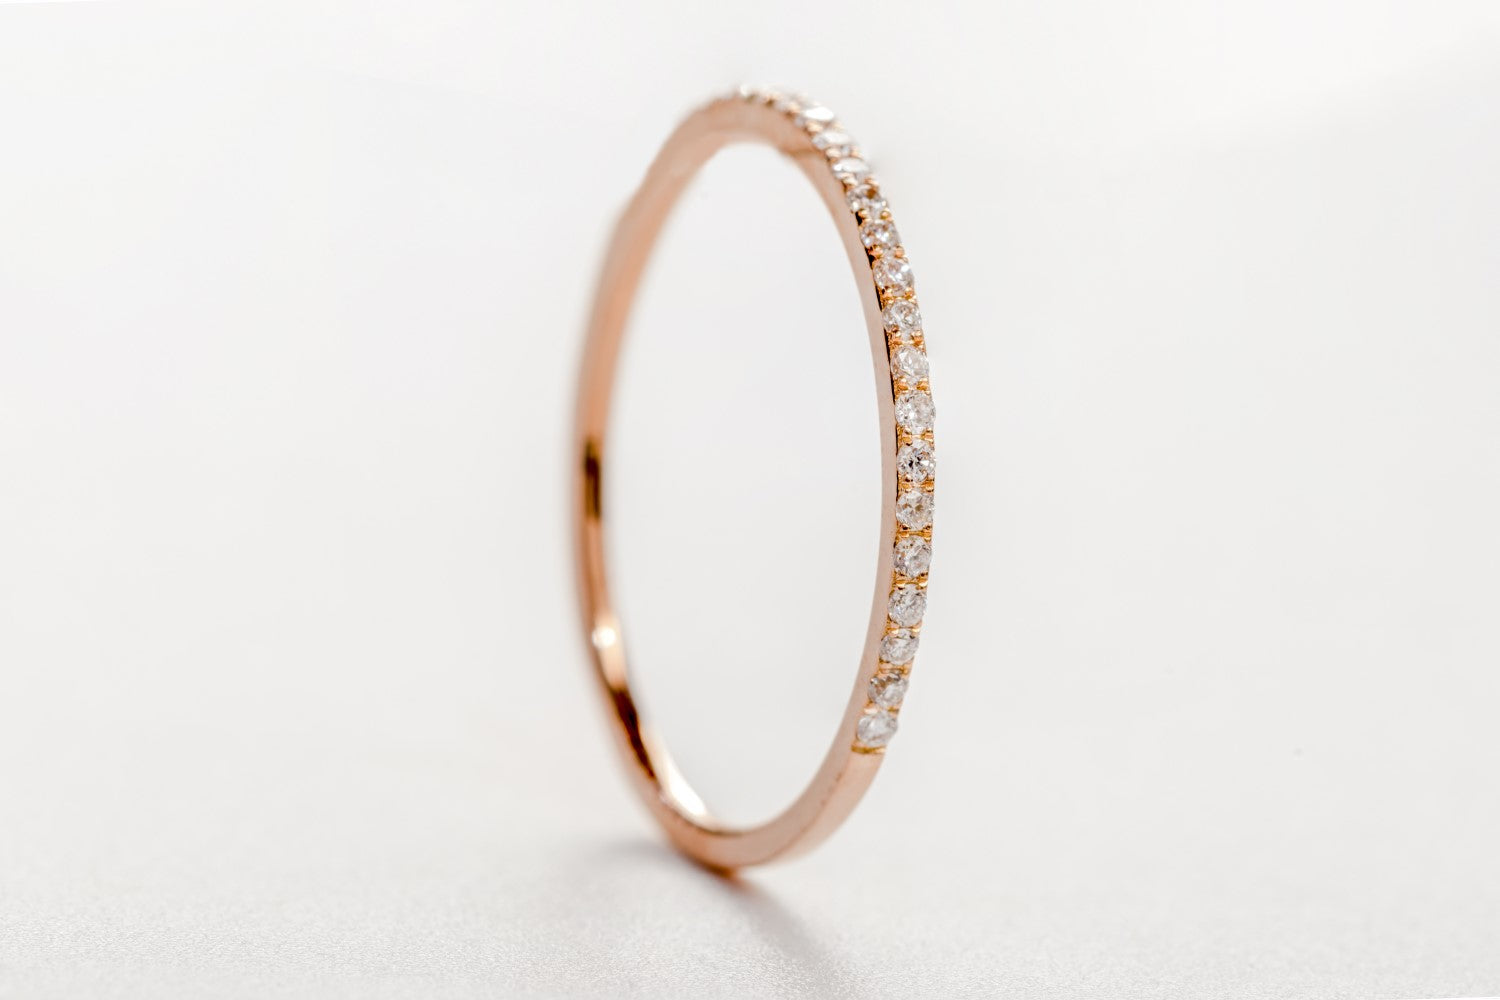 0.14tcw Diamond and 18ct Rose Gold Petite 1mm Half Eternity Band Ring US 5.5